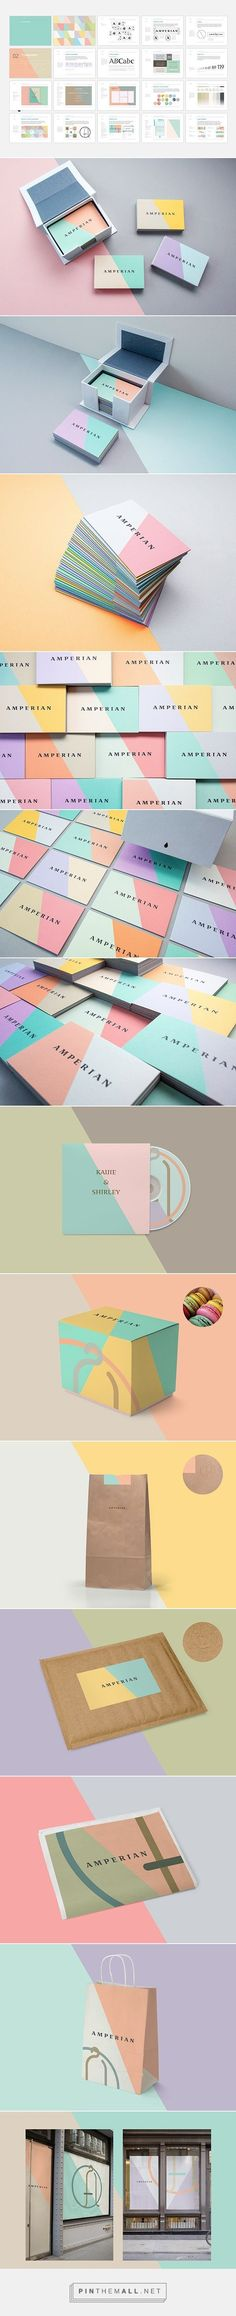 Color blocking #stationery design. Love the business cards and packaging especially.